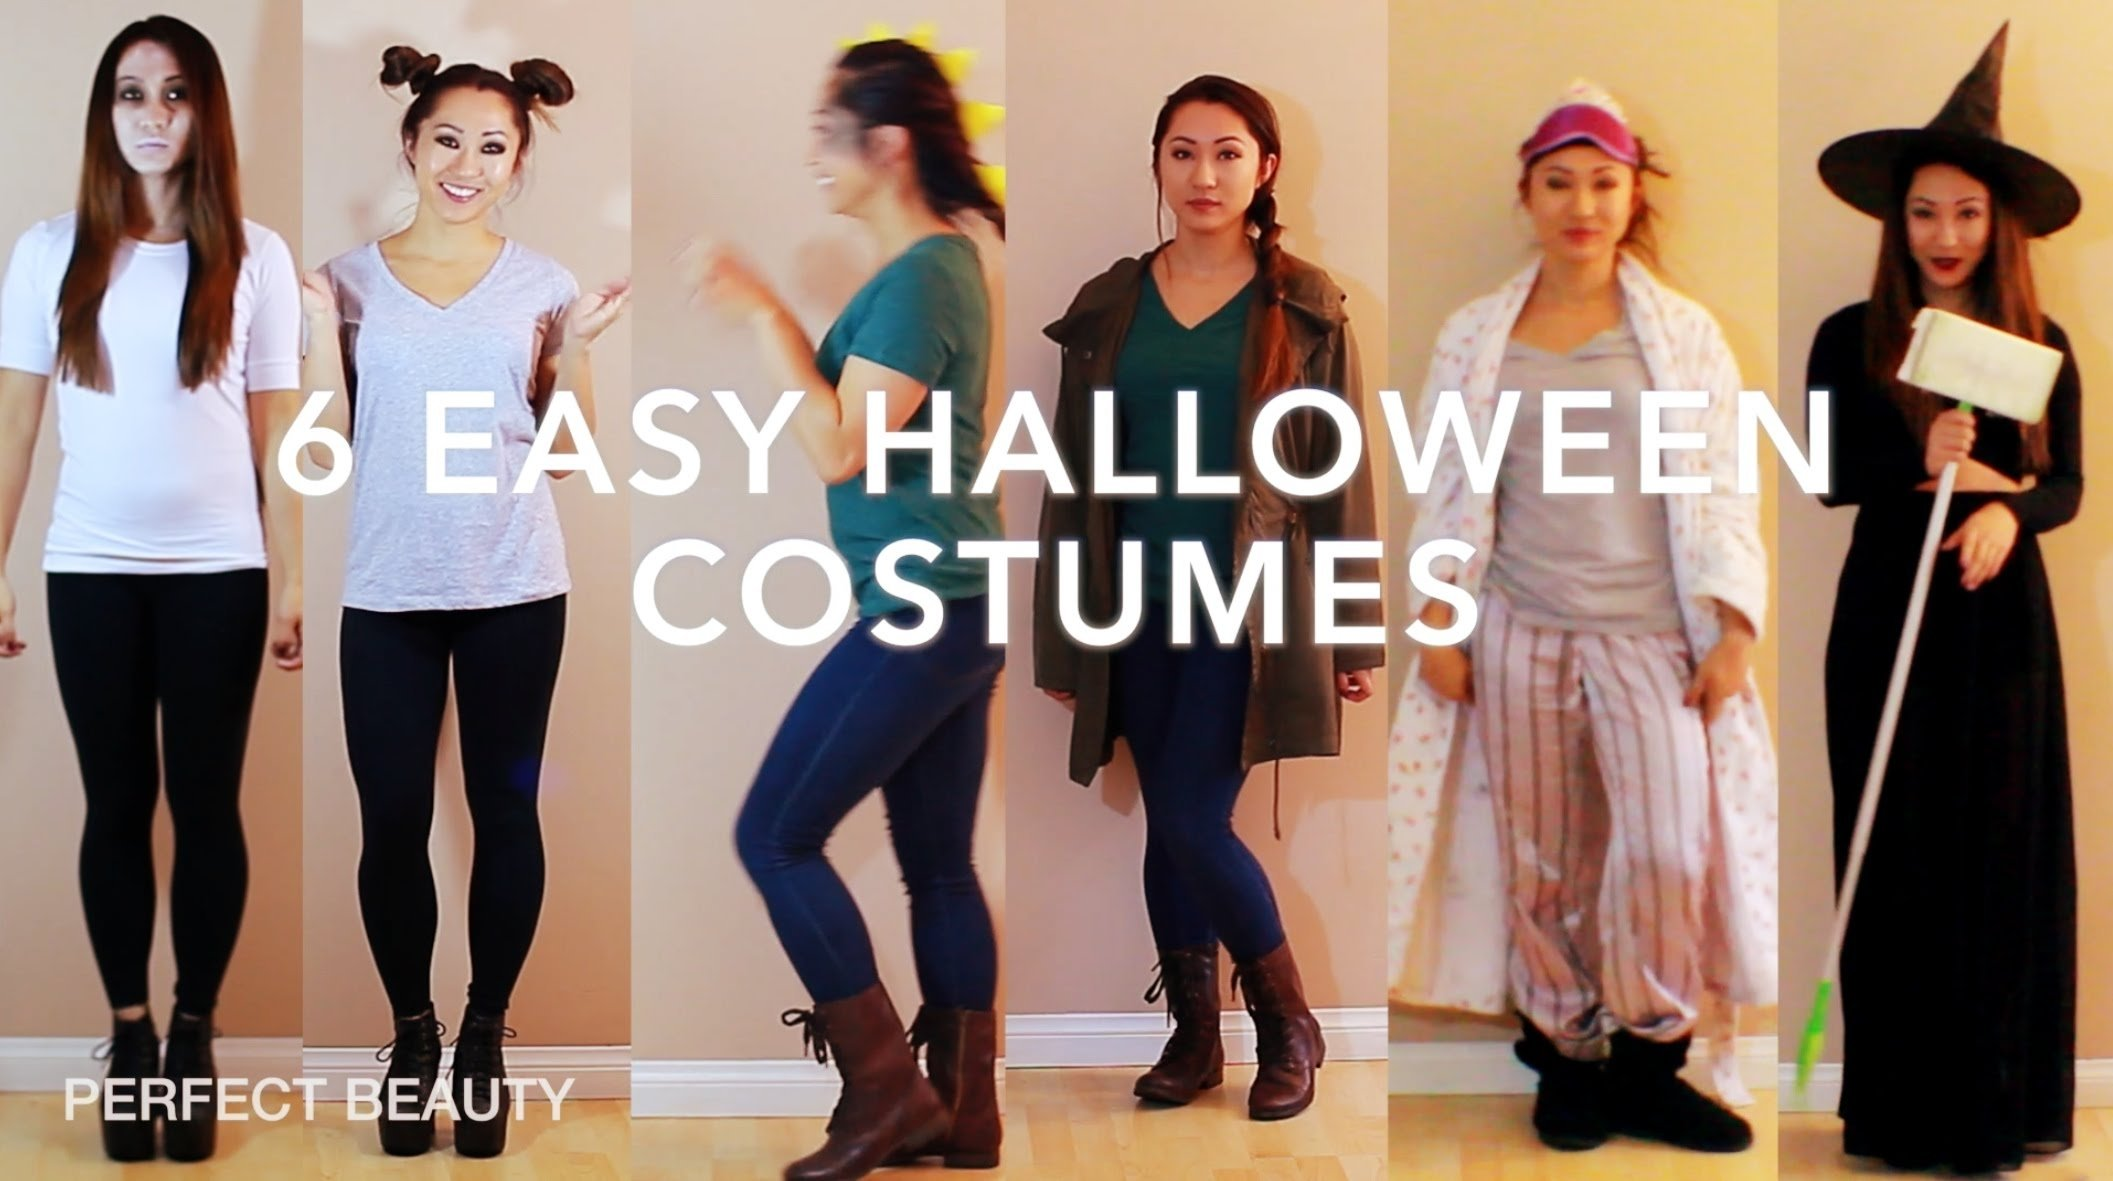 10 Stylish At Home Costume Ideas For Women last minute diy halloween costume ideas perfect beauty youtube 10 2021